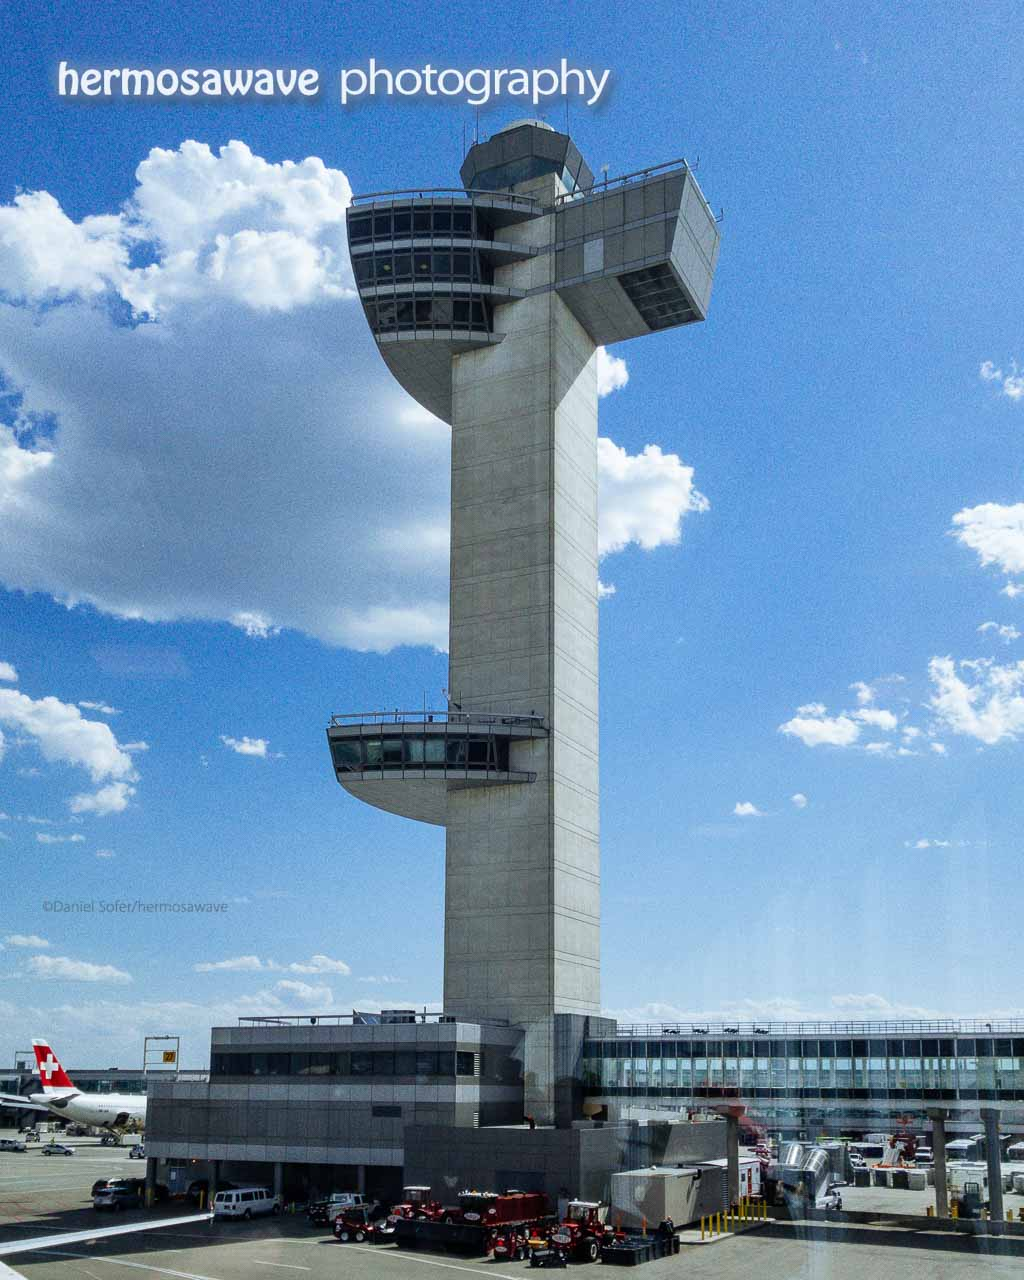 Control Tower at JFK